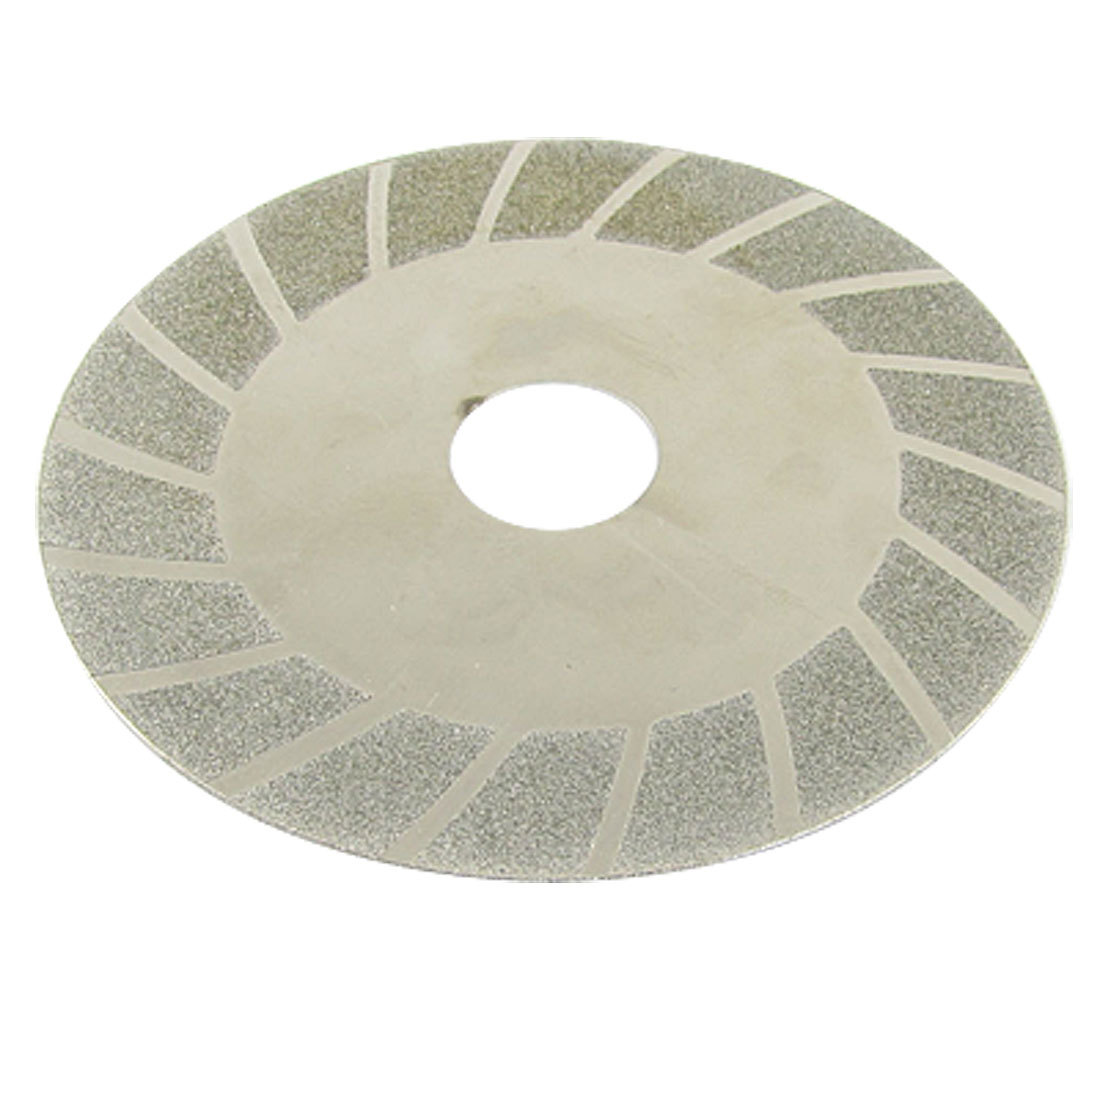 100mm x 20mm Glass Stone Ceramic Electroplated Diamond Saw Cutter Disc Cutting Wheel